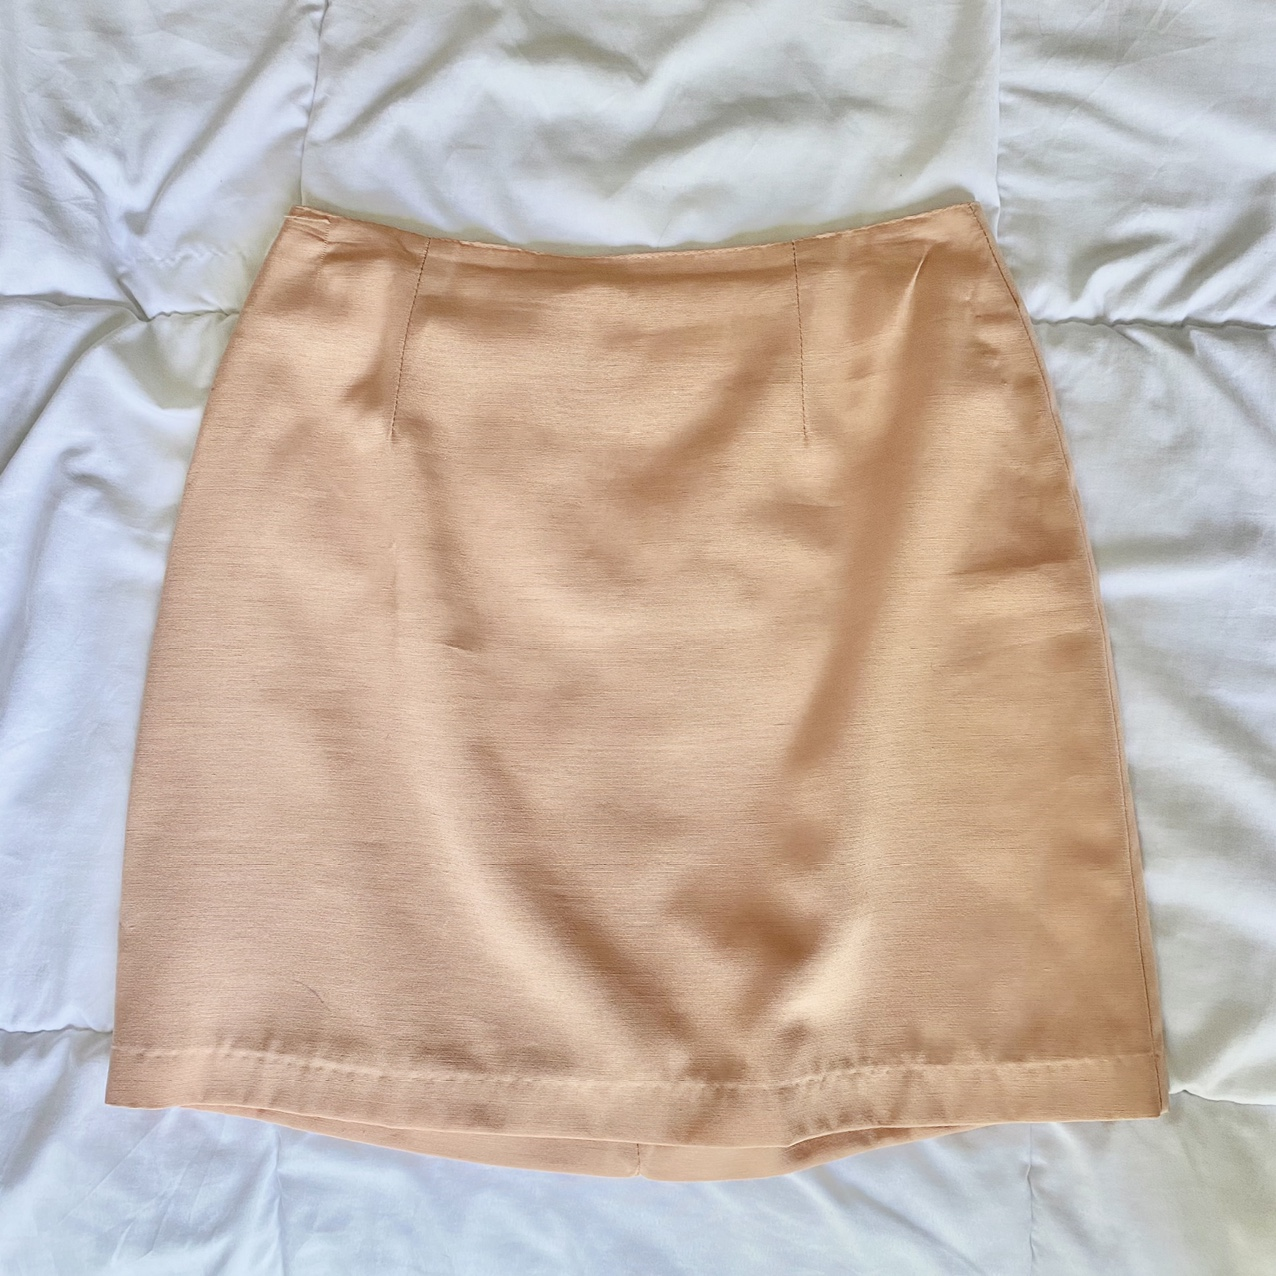 Product Image 1 - Vintage mini skirt in a